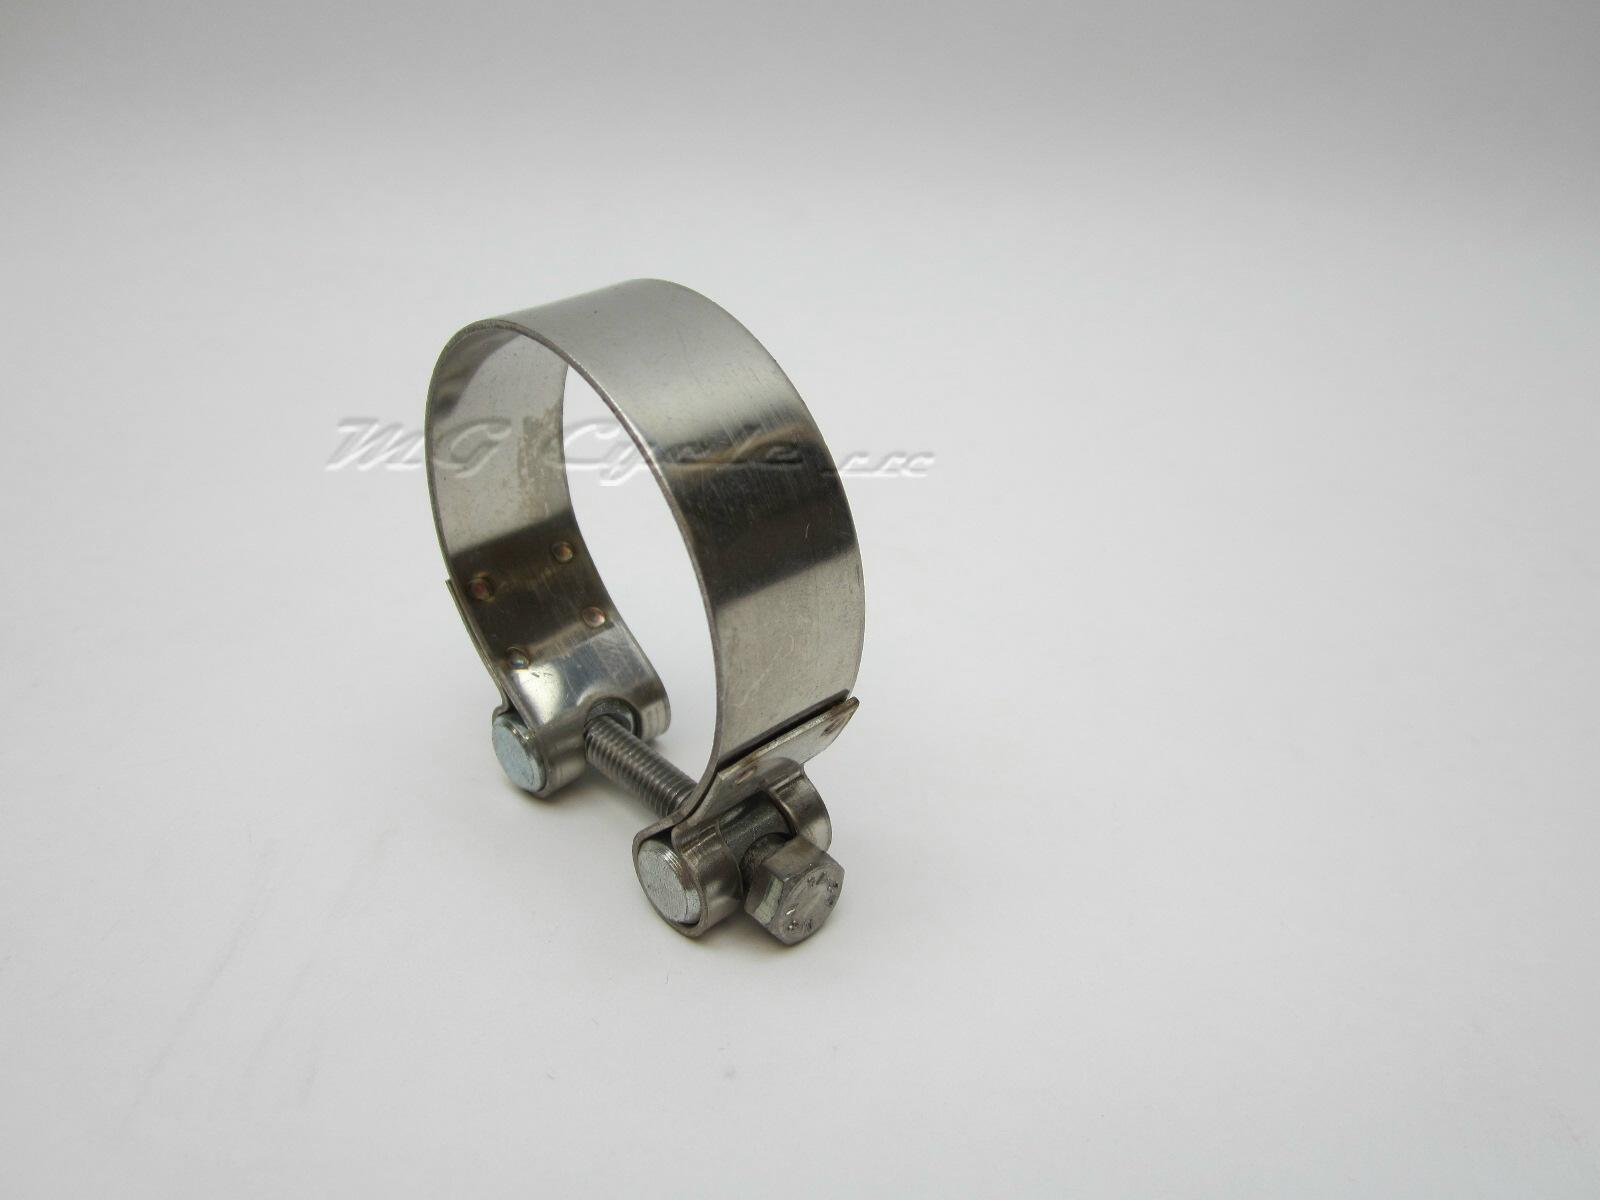 Muffler clamp for V11 Sport/LeMans, stainless GU01126930